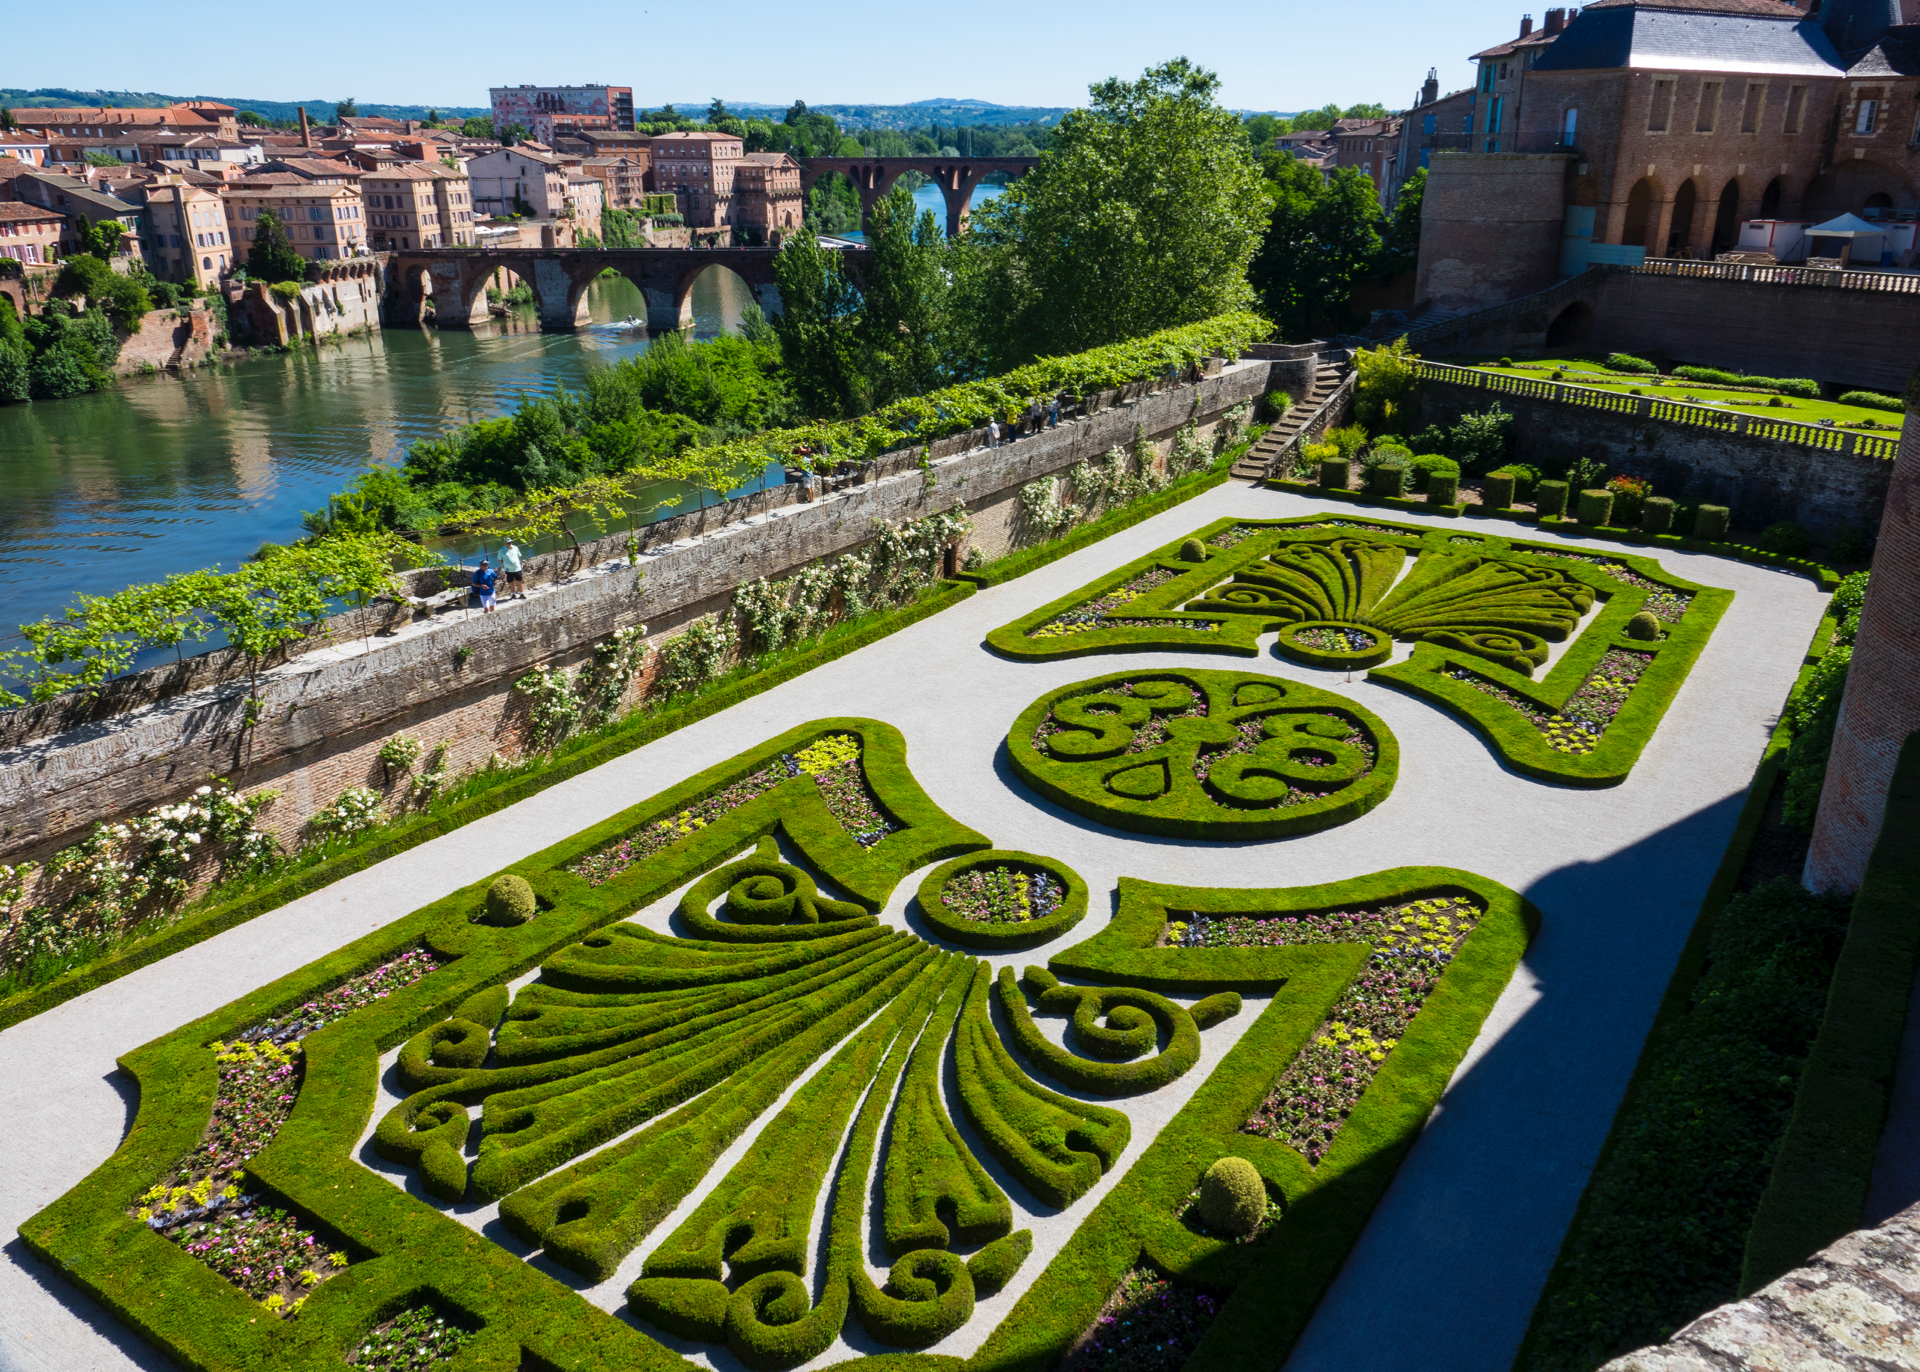 The formal gardens are so elaborate and beautiful to look at.